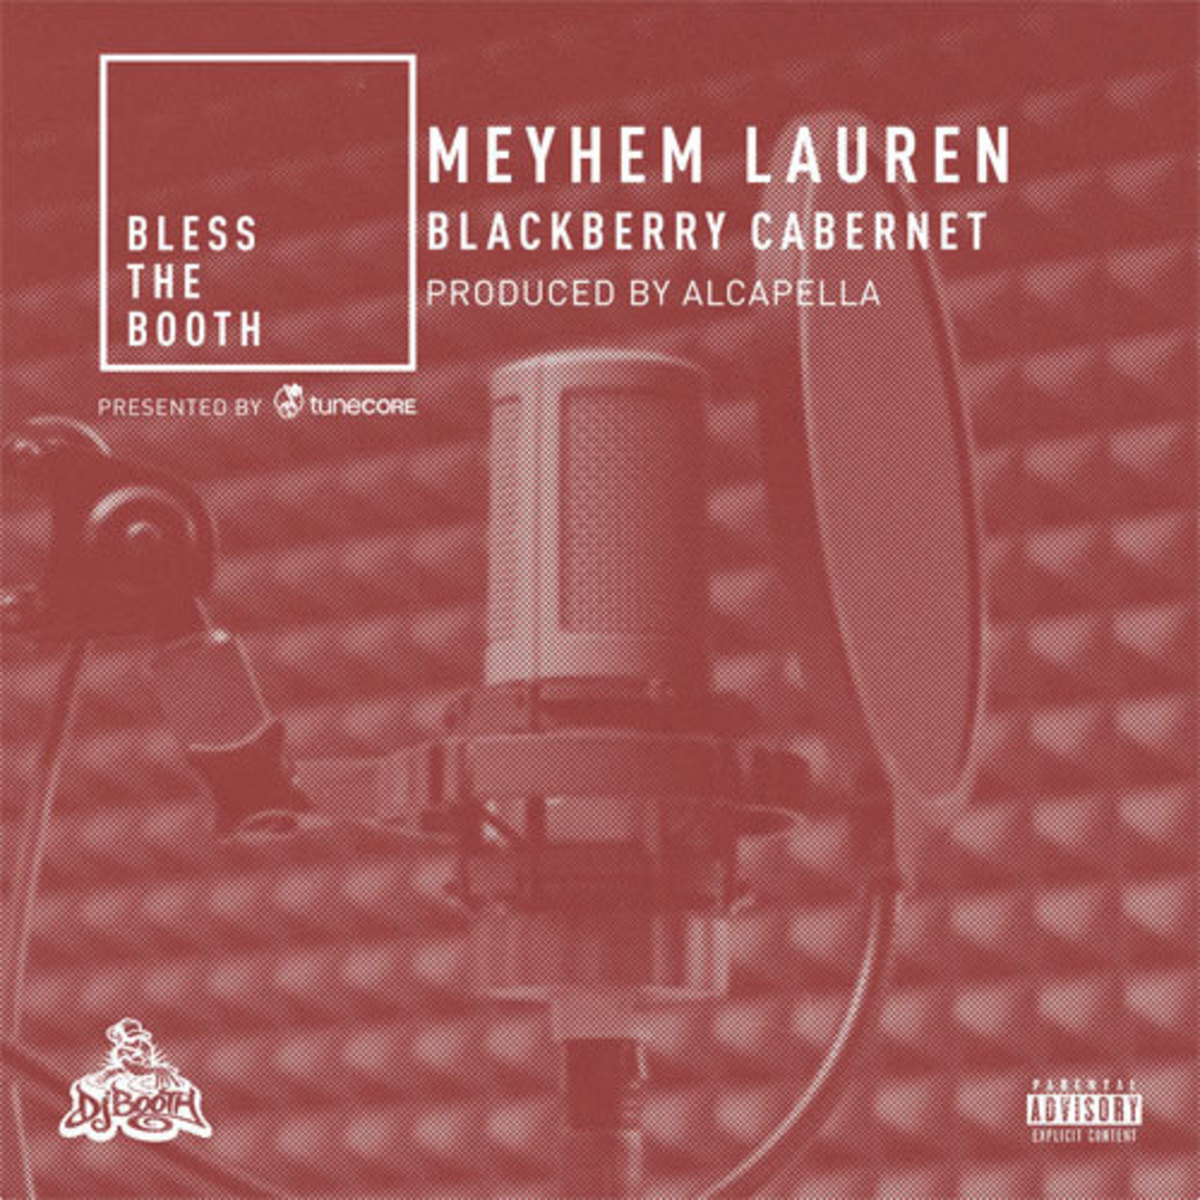 meyhem-lauren-blackberry-cabernet-btb-2.jpg